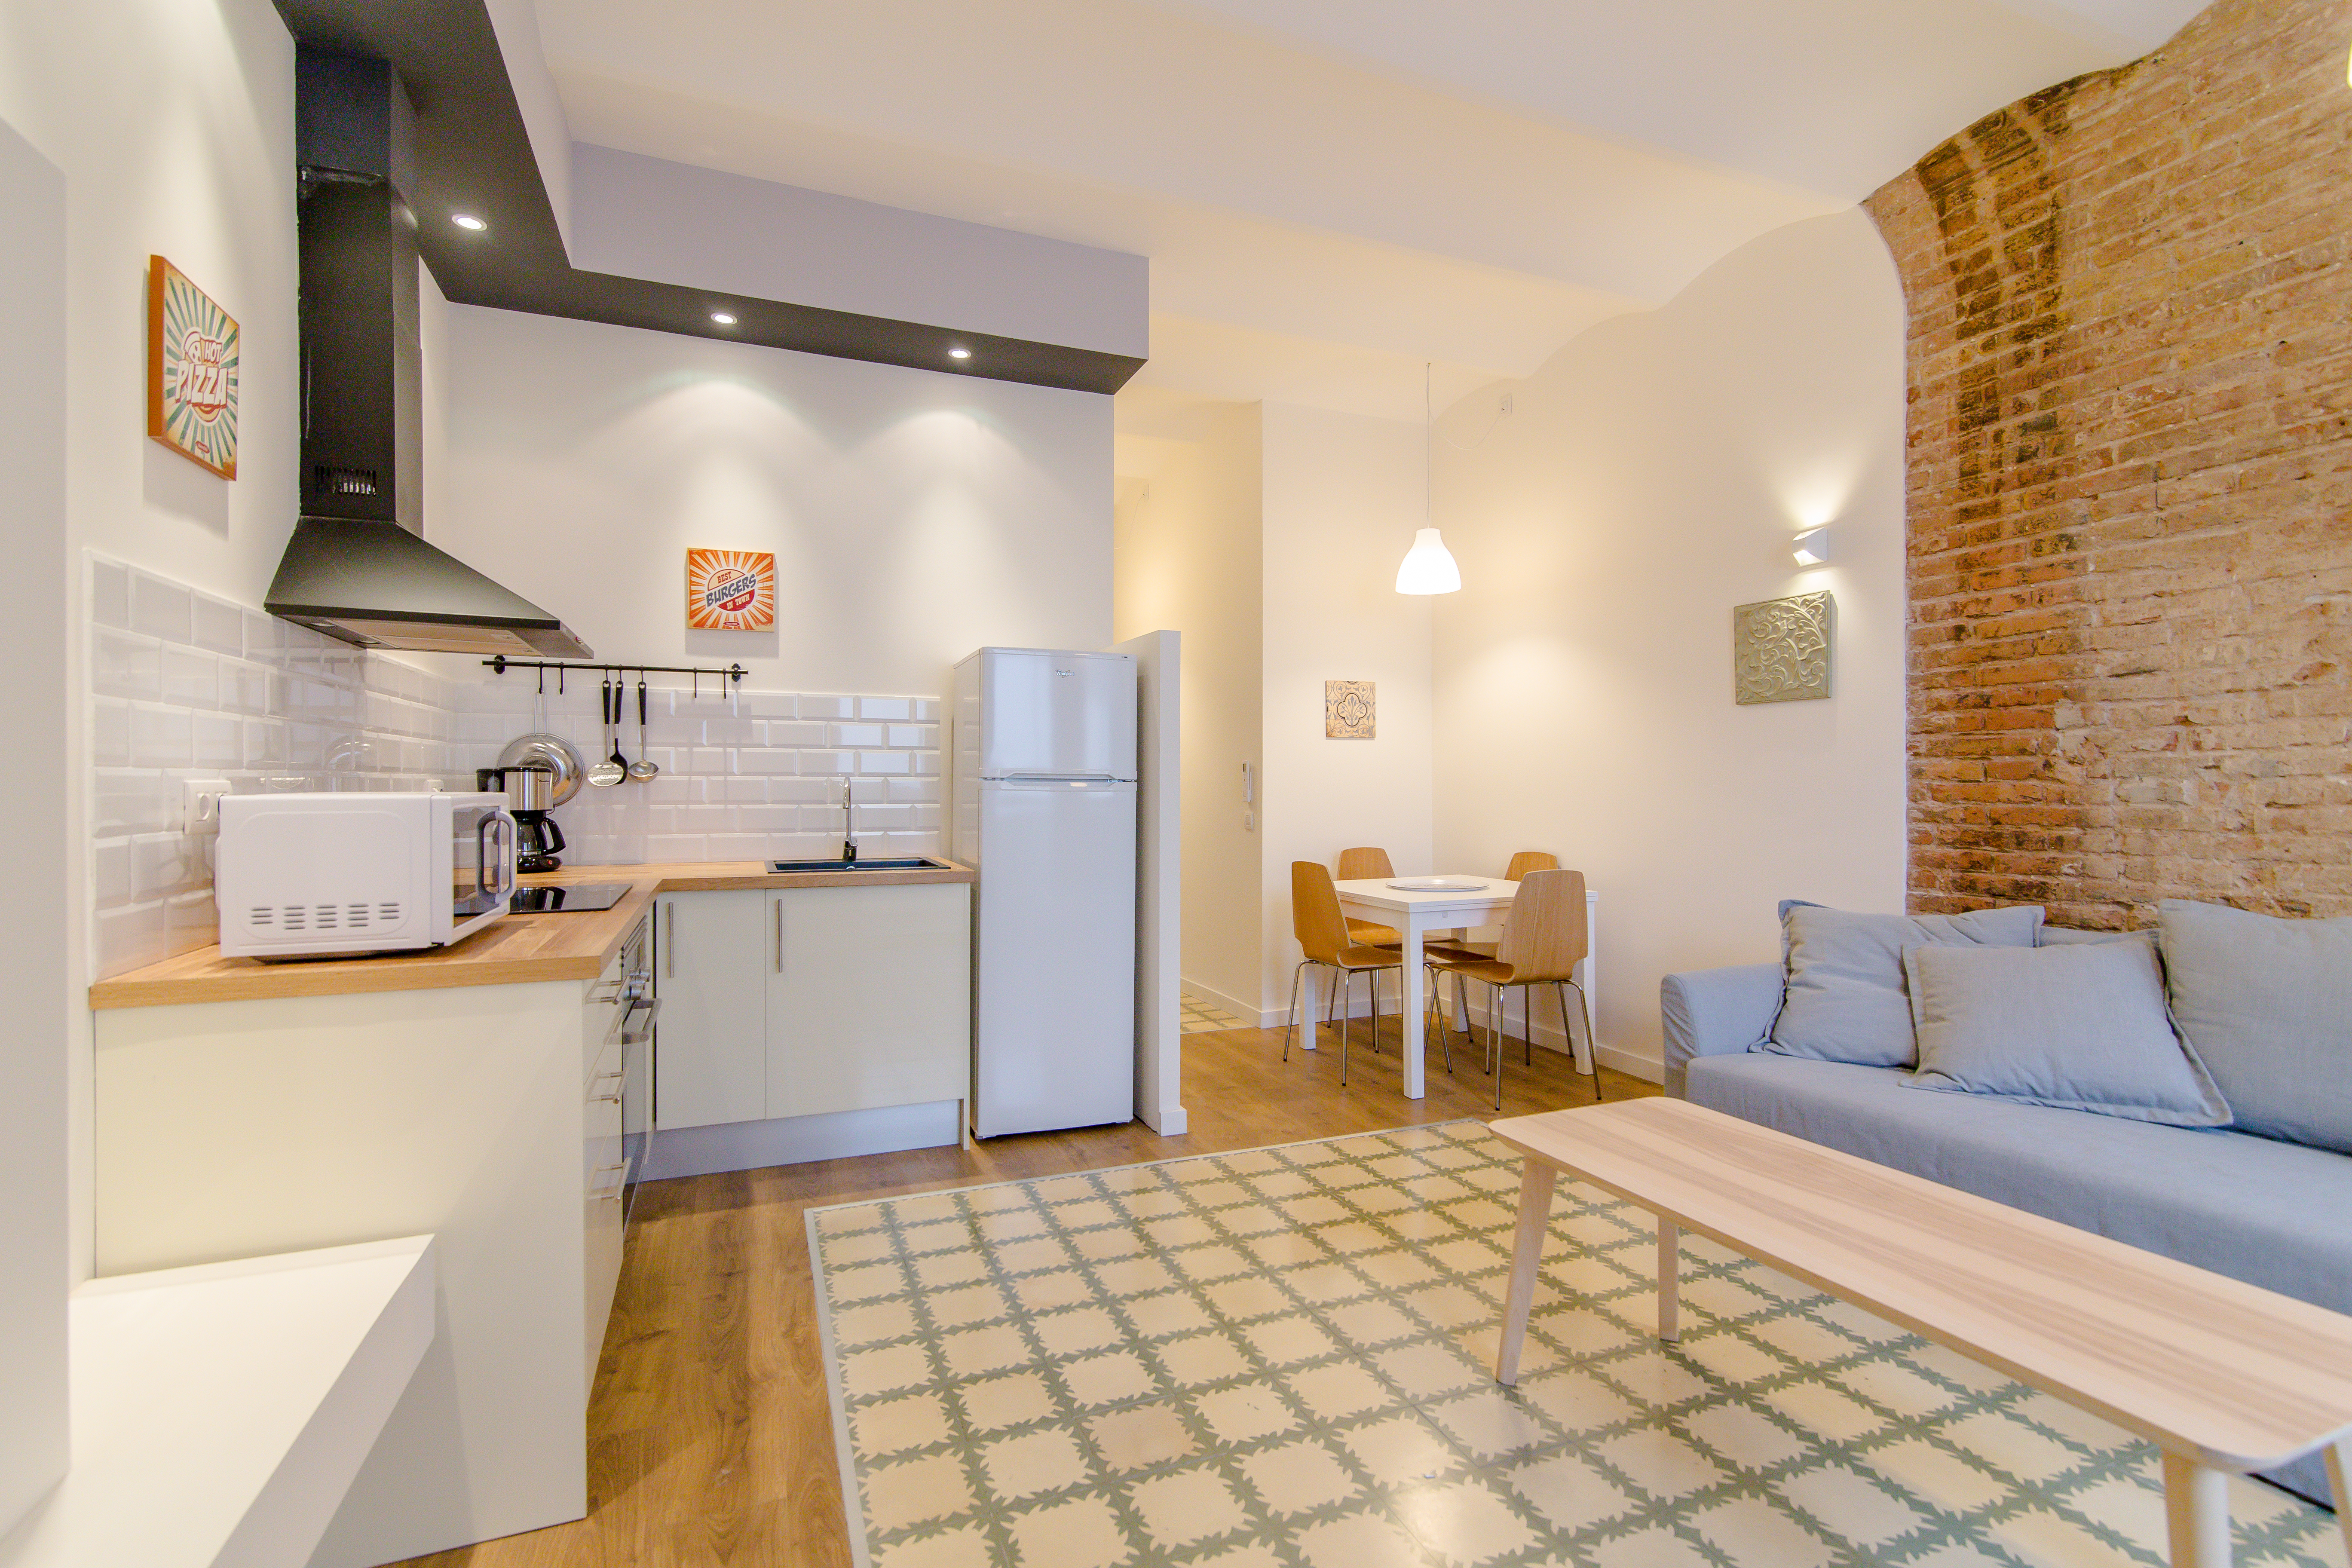 Ad Flat For Rent With 2 Bedrooms In Poble Sec # Muebles Poble Sec